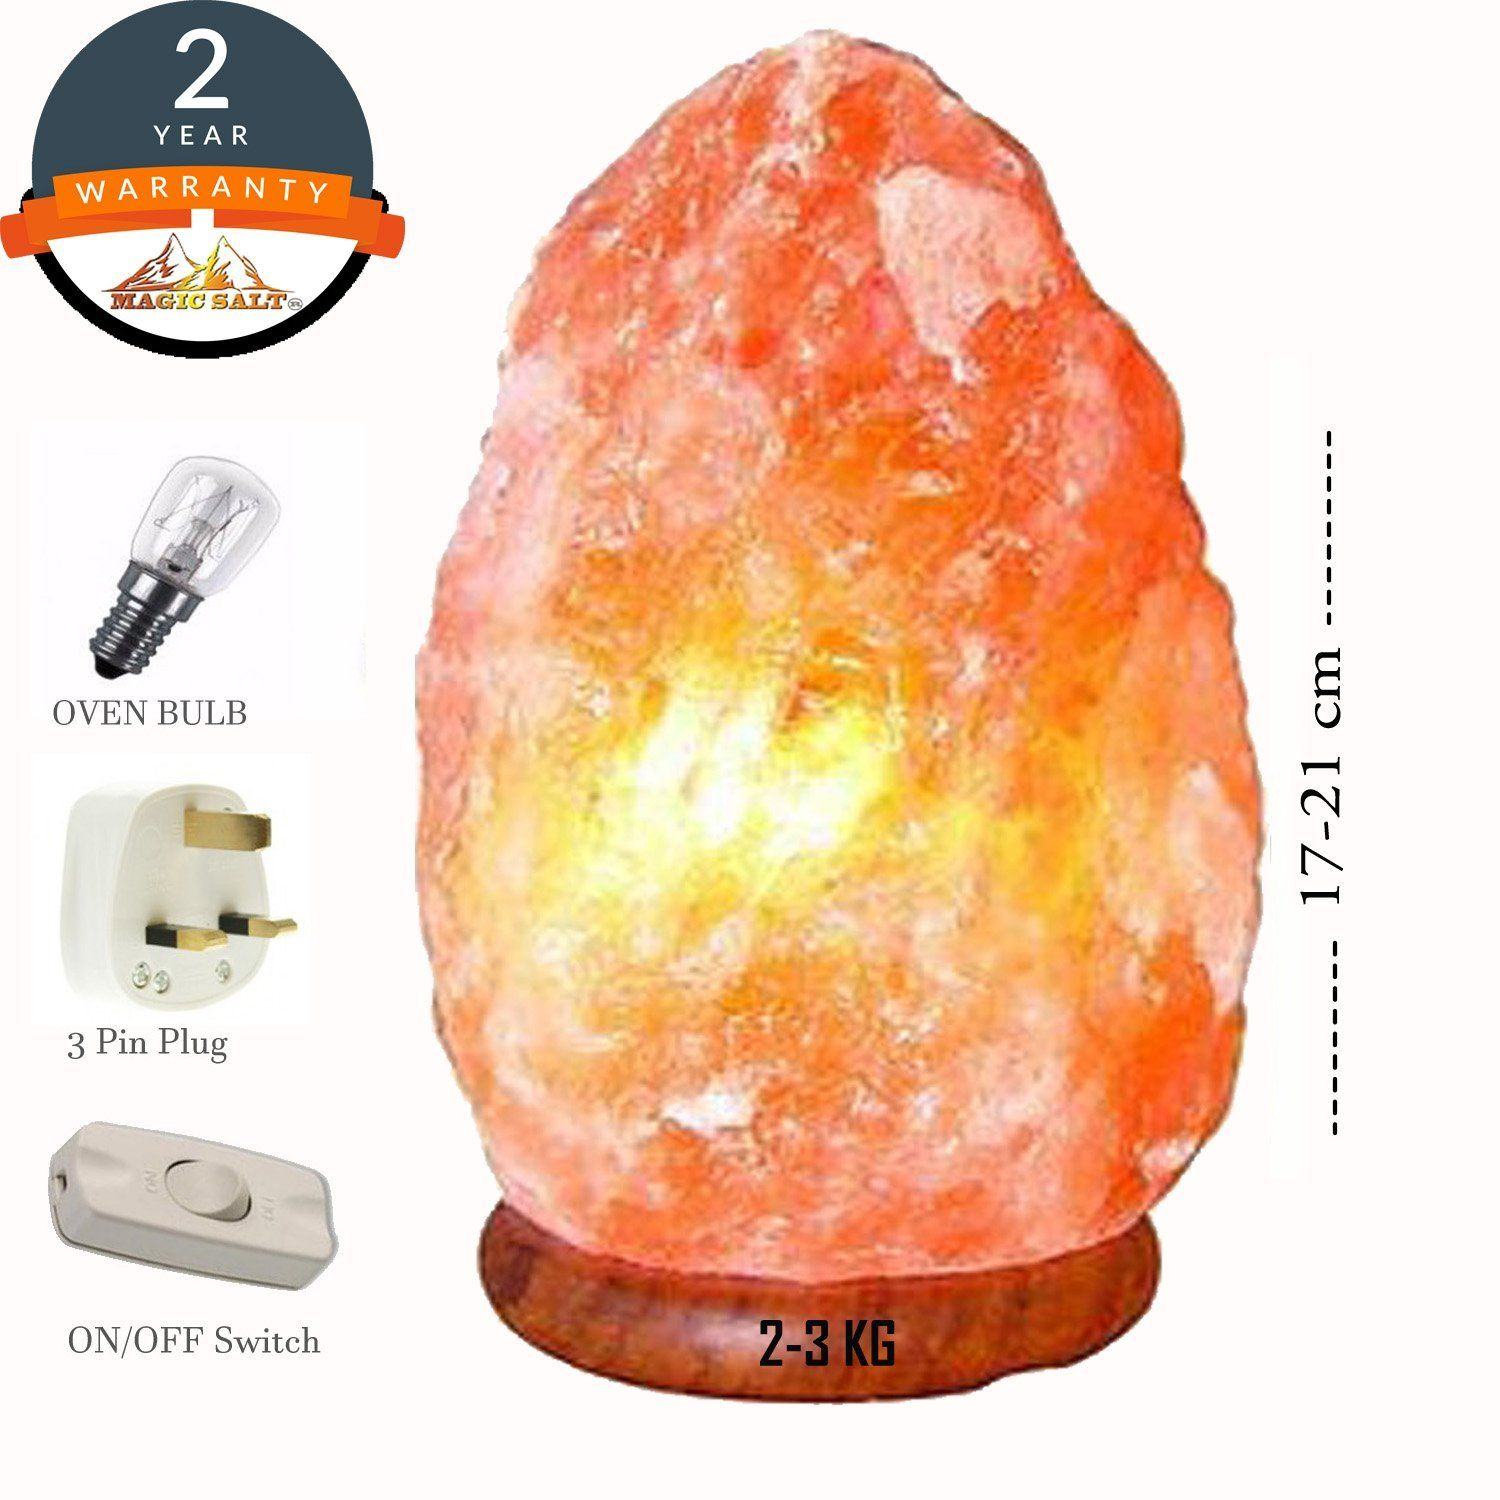 Himalayan Salt Lamps For Sale Classy Price £1499 Sale £1197 Free Uk Deliveryhimalayan Salt Lamp 23